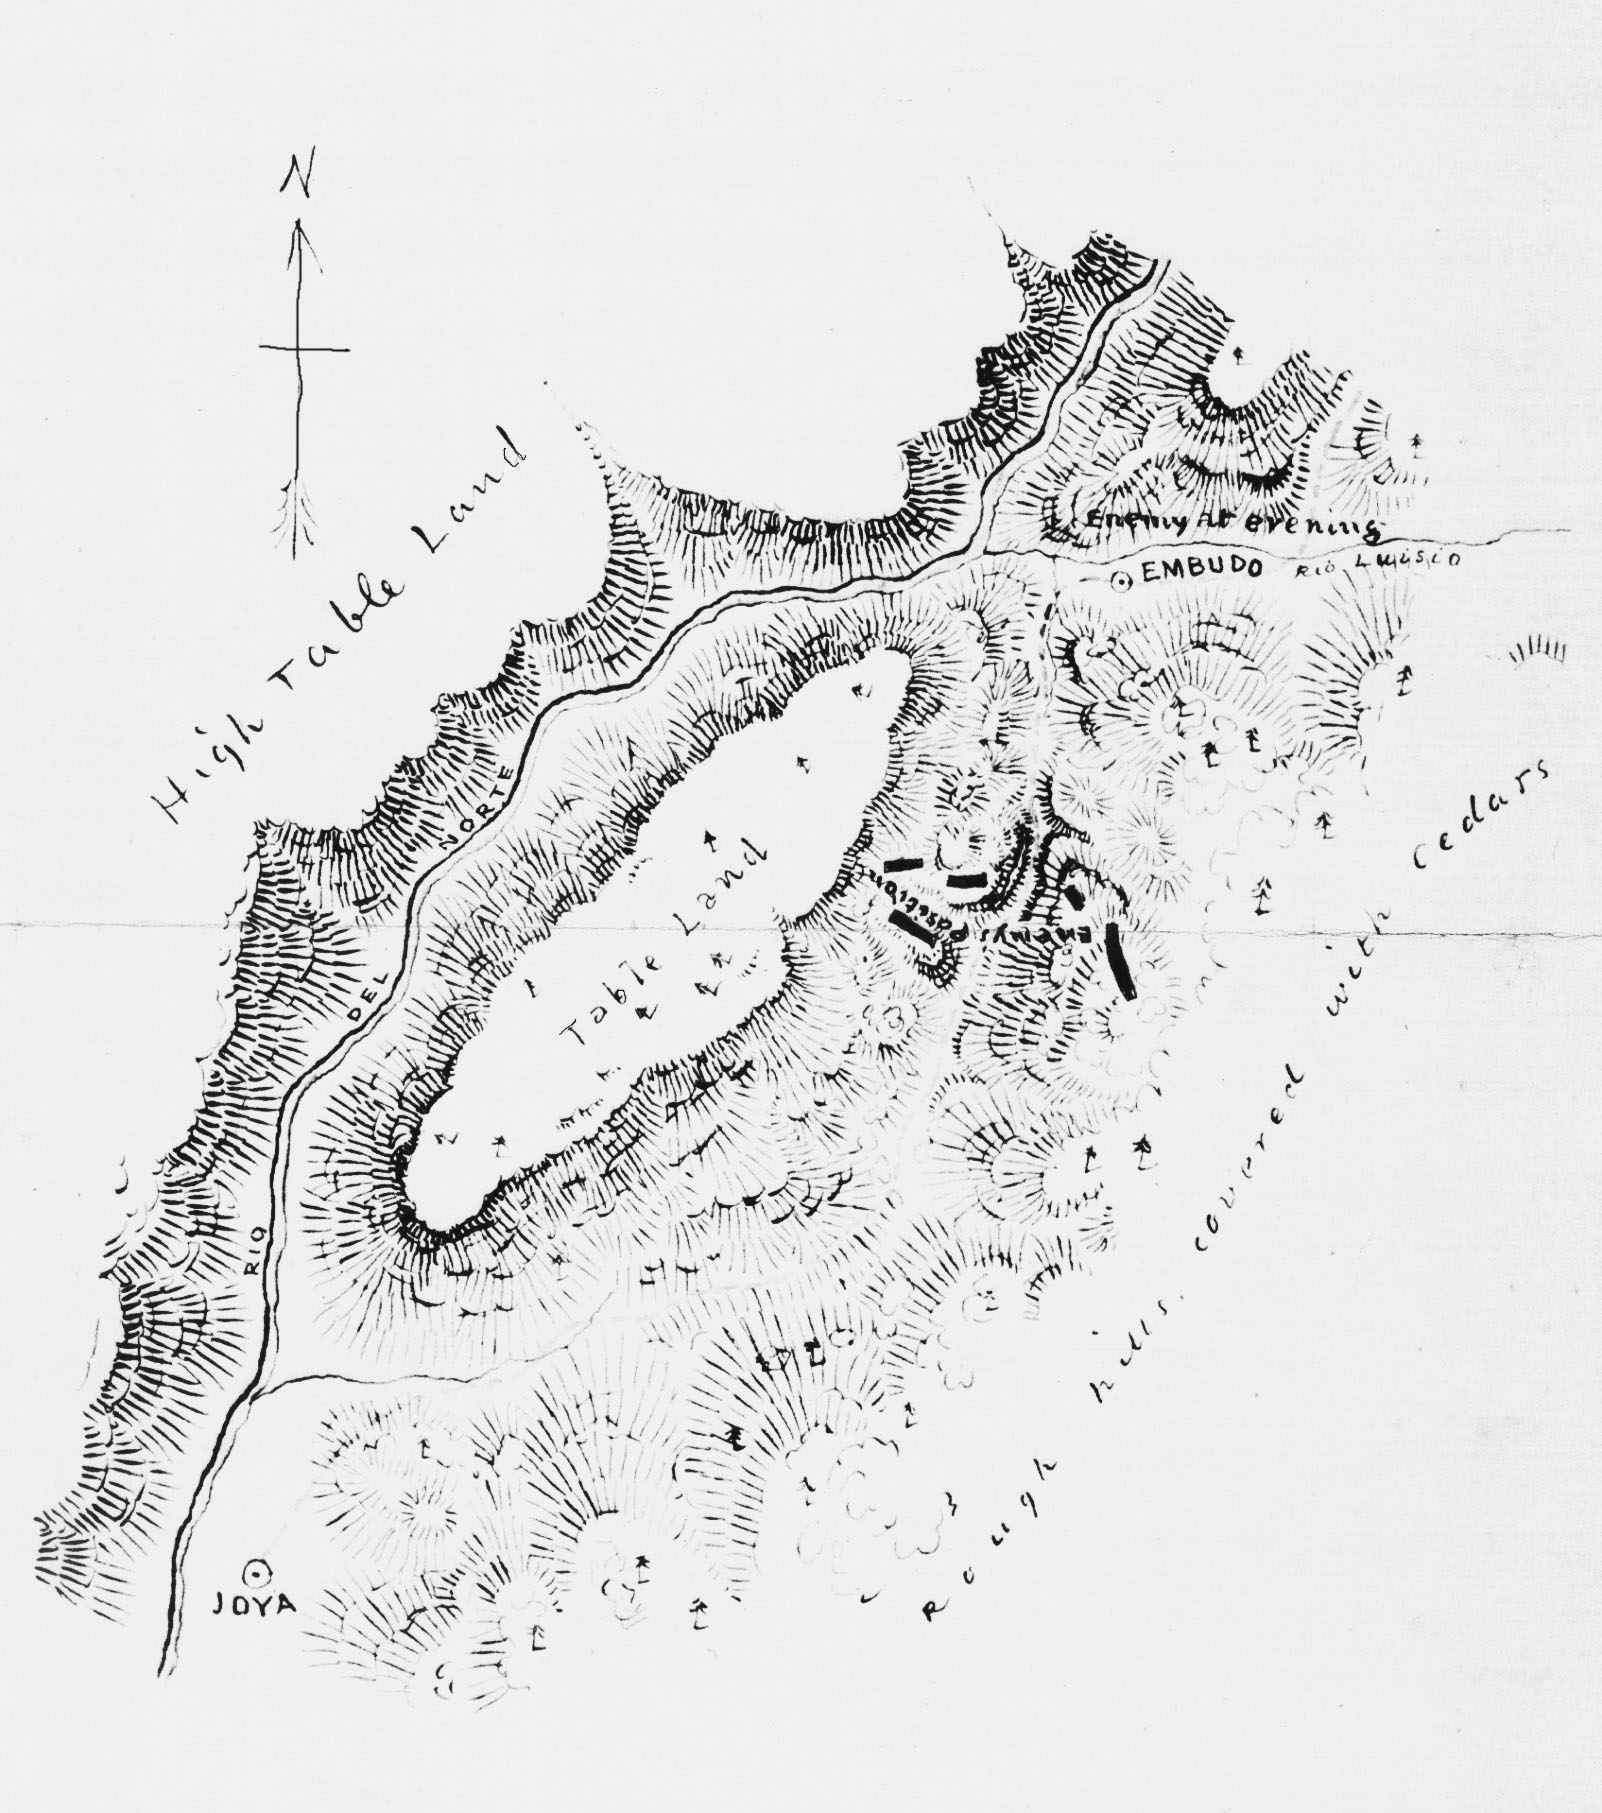 Battle of Embudo Pass, drawn by US Army Corps of Engineers artist JG Bruff in 1847 and obtained from the Library of Congress